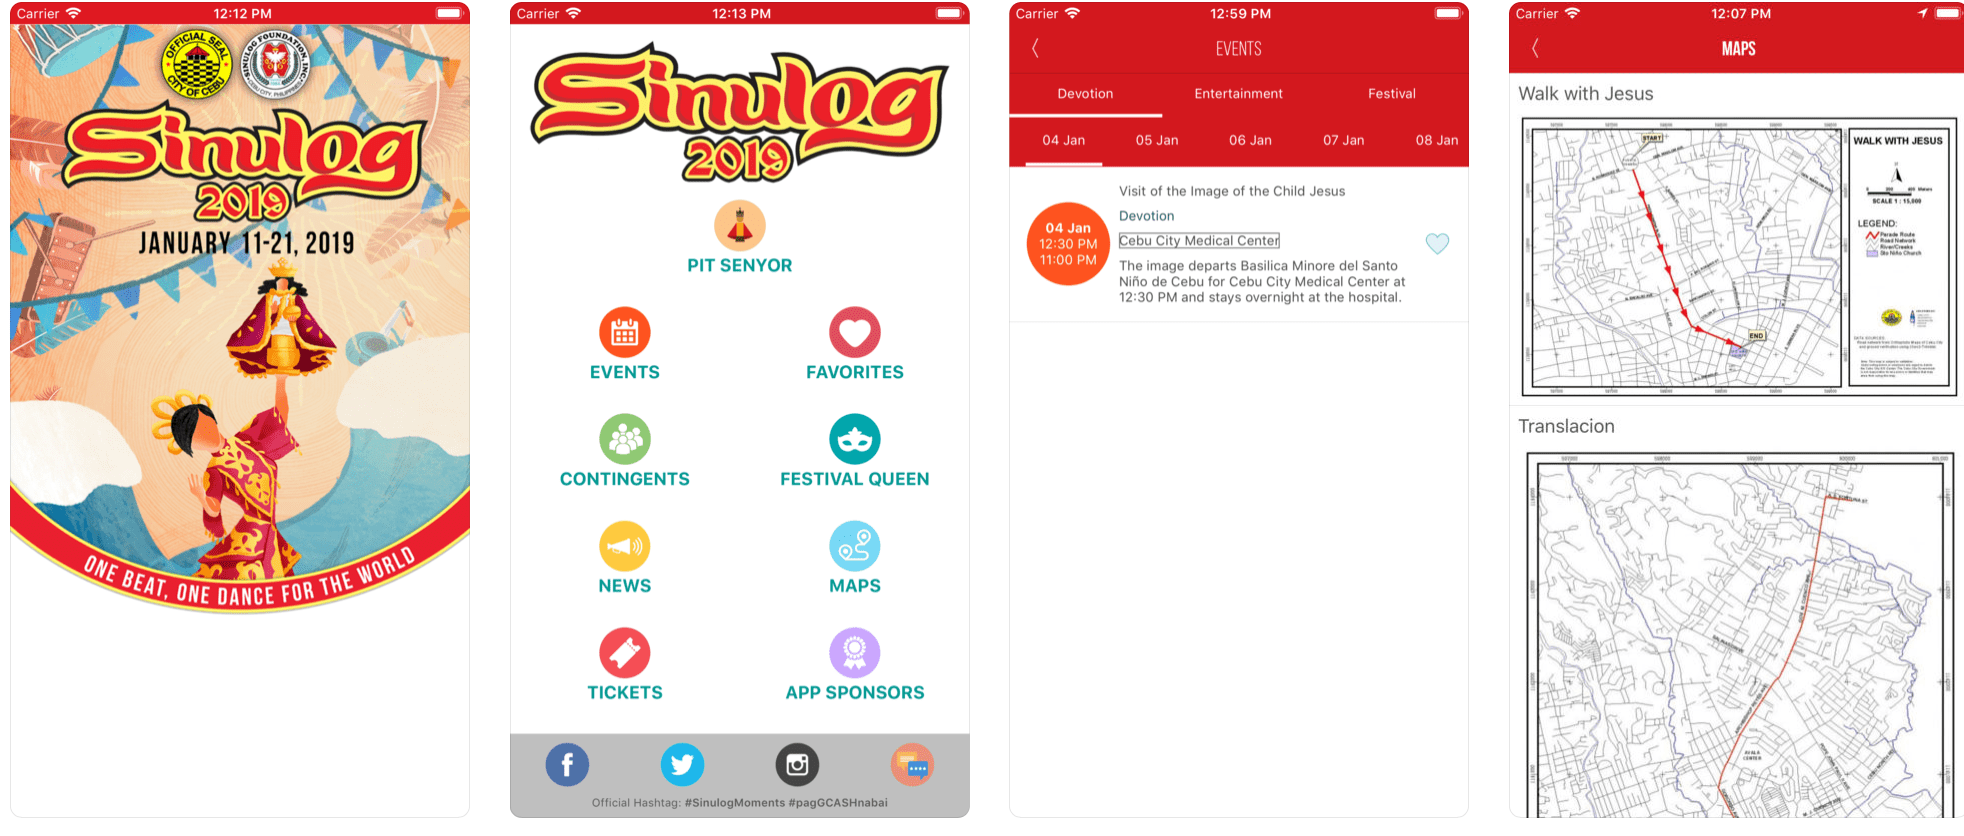 Sinulog 2019 Mobile App